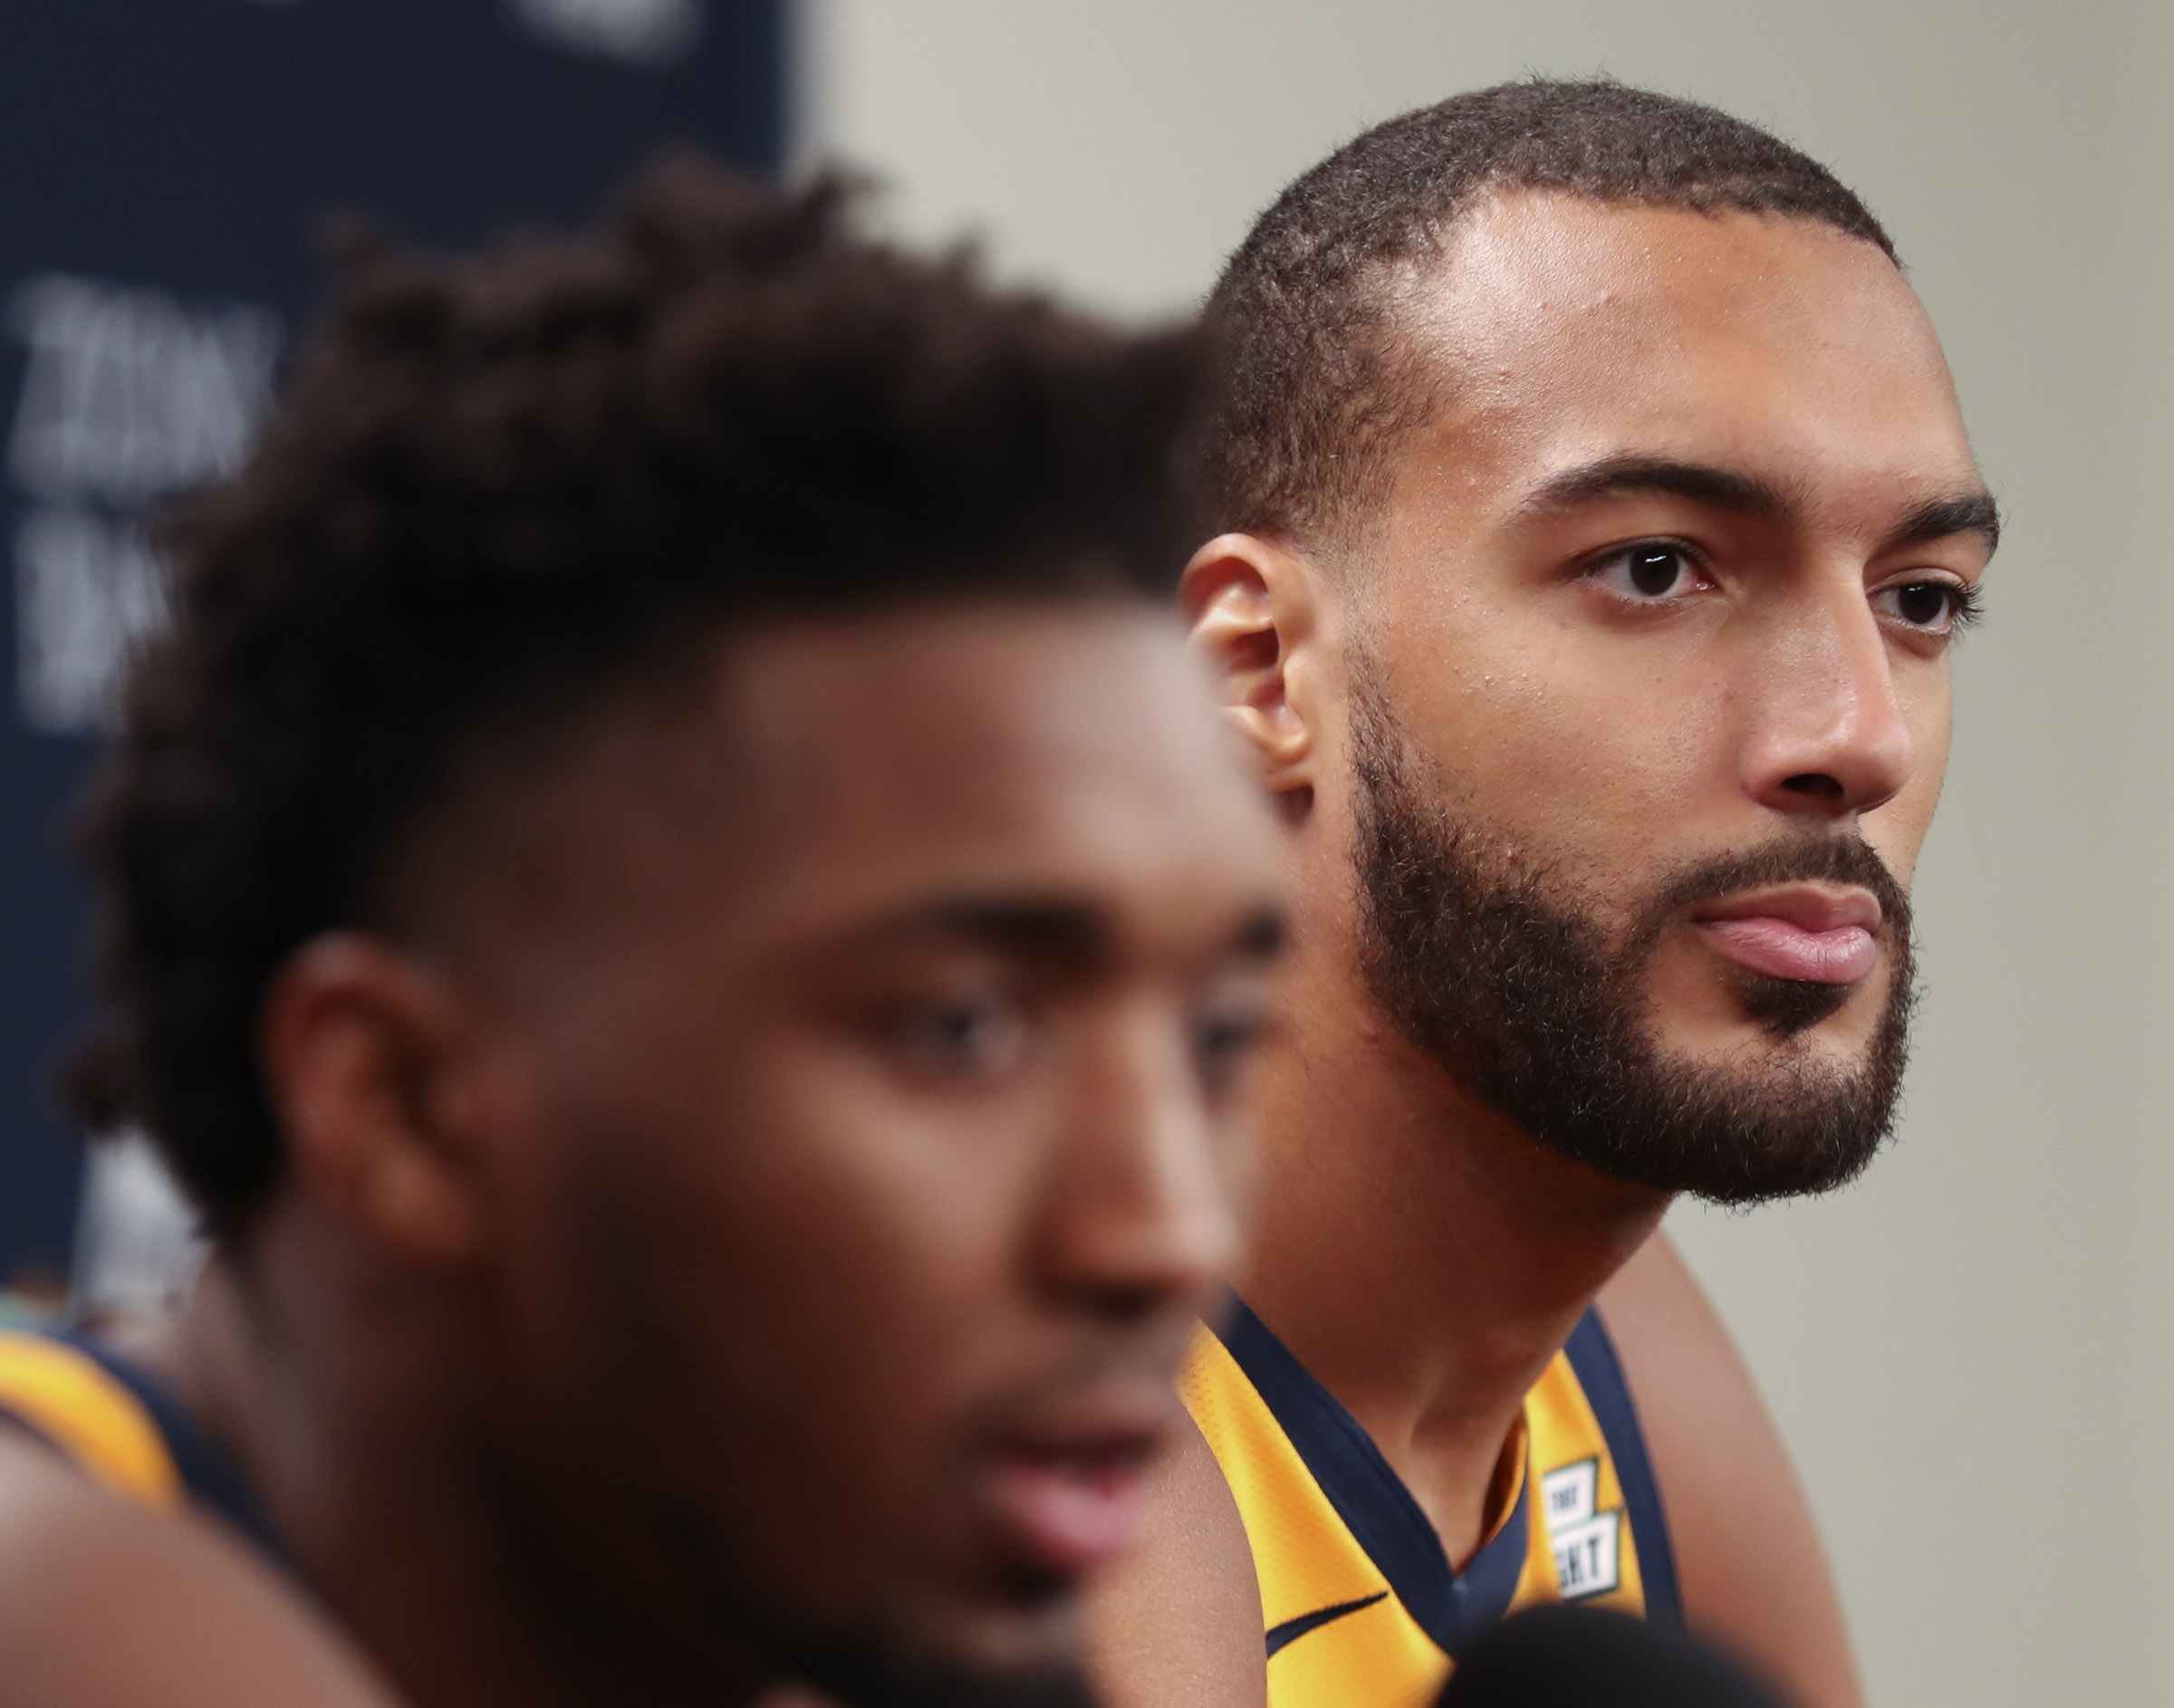 Utah Jazz players Rudy Gobert, right, and Donovan Mitchell and answer questions during Jazz Media Day at Vivint Arena in Salt Lake City on Monday, Sept. 30, 2019.